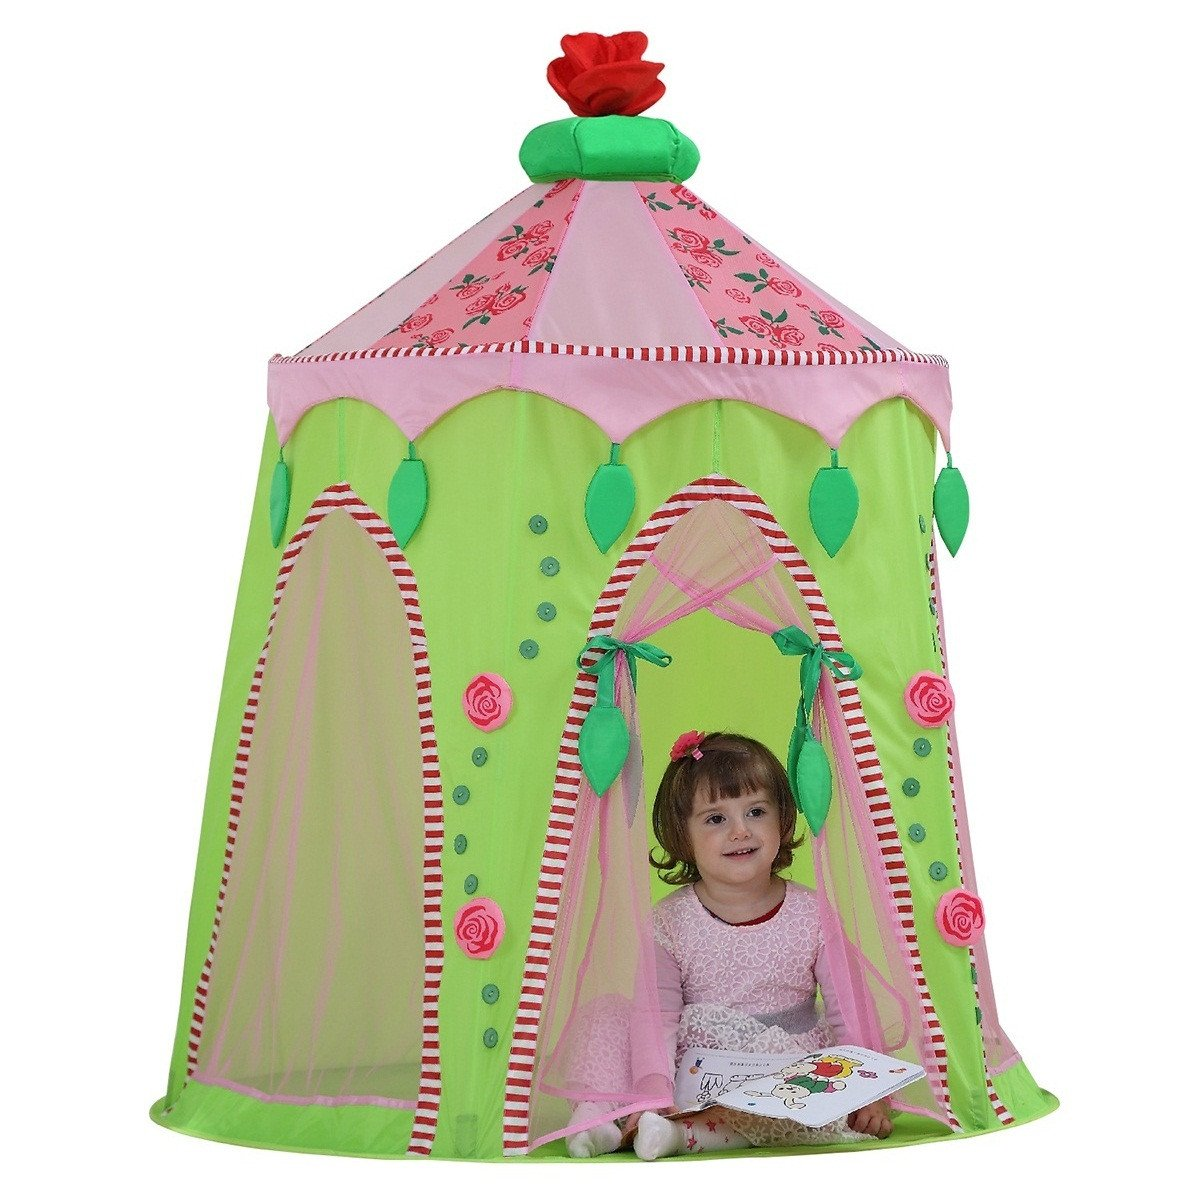 Dream House Foldable Indoor Children Play Princess Pop Up Castle Tent  sc 1 st  DreamHouse Tent & Dream House Foldable Indoor Children Play Princess Pop Up Castle ...